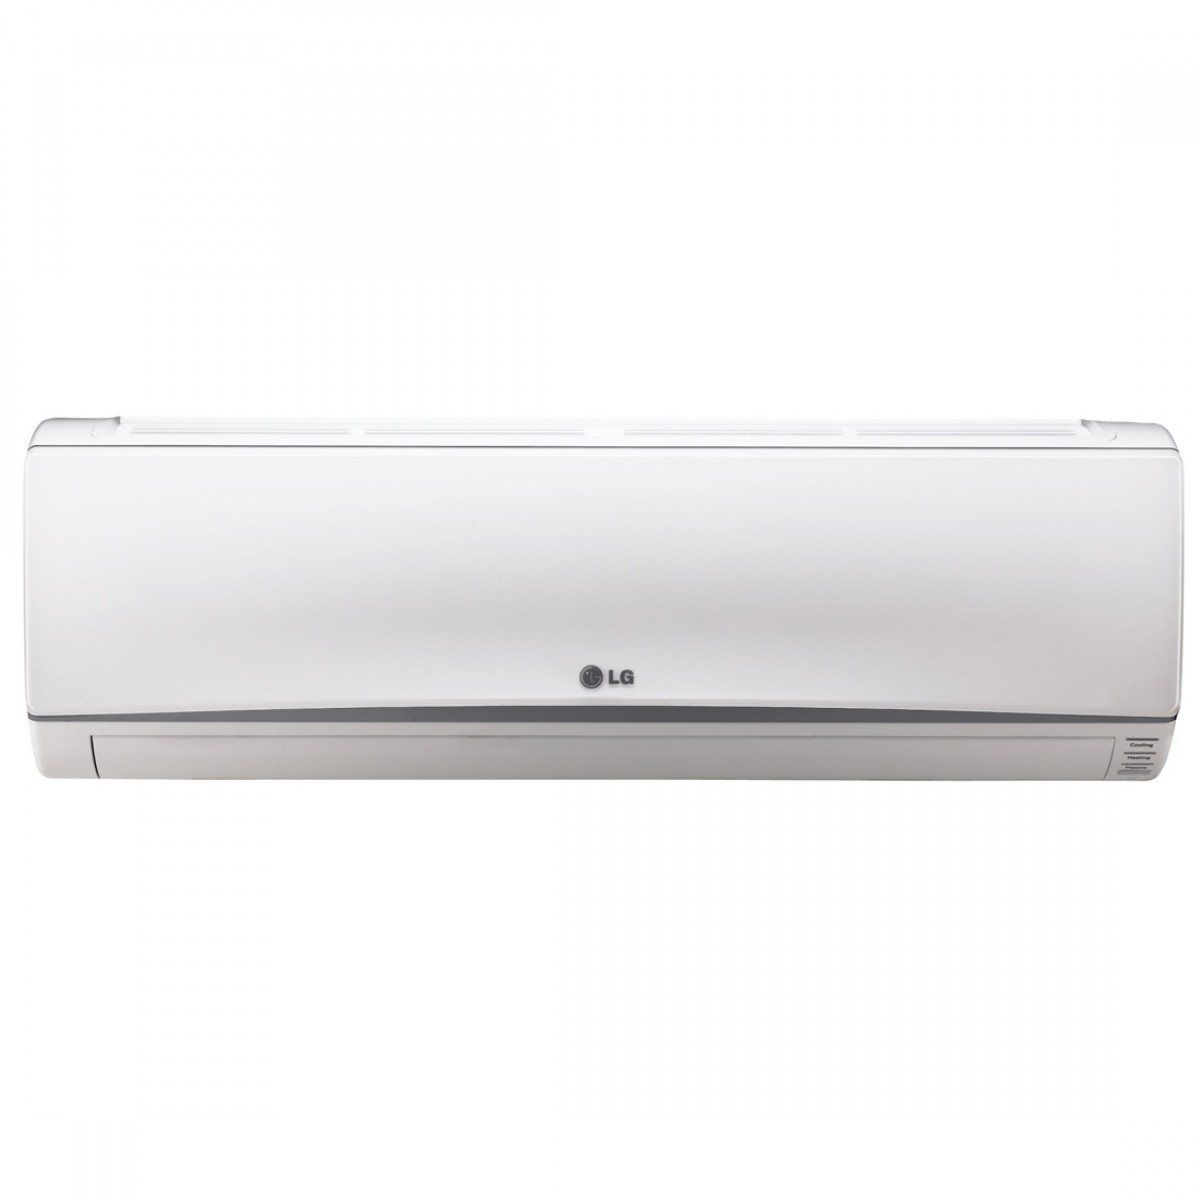 Lg 2 Ton Split Air Conditioner Hsc 2465saa1 Price In